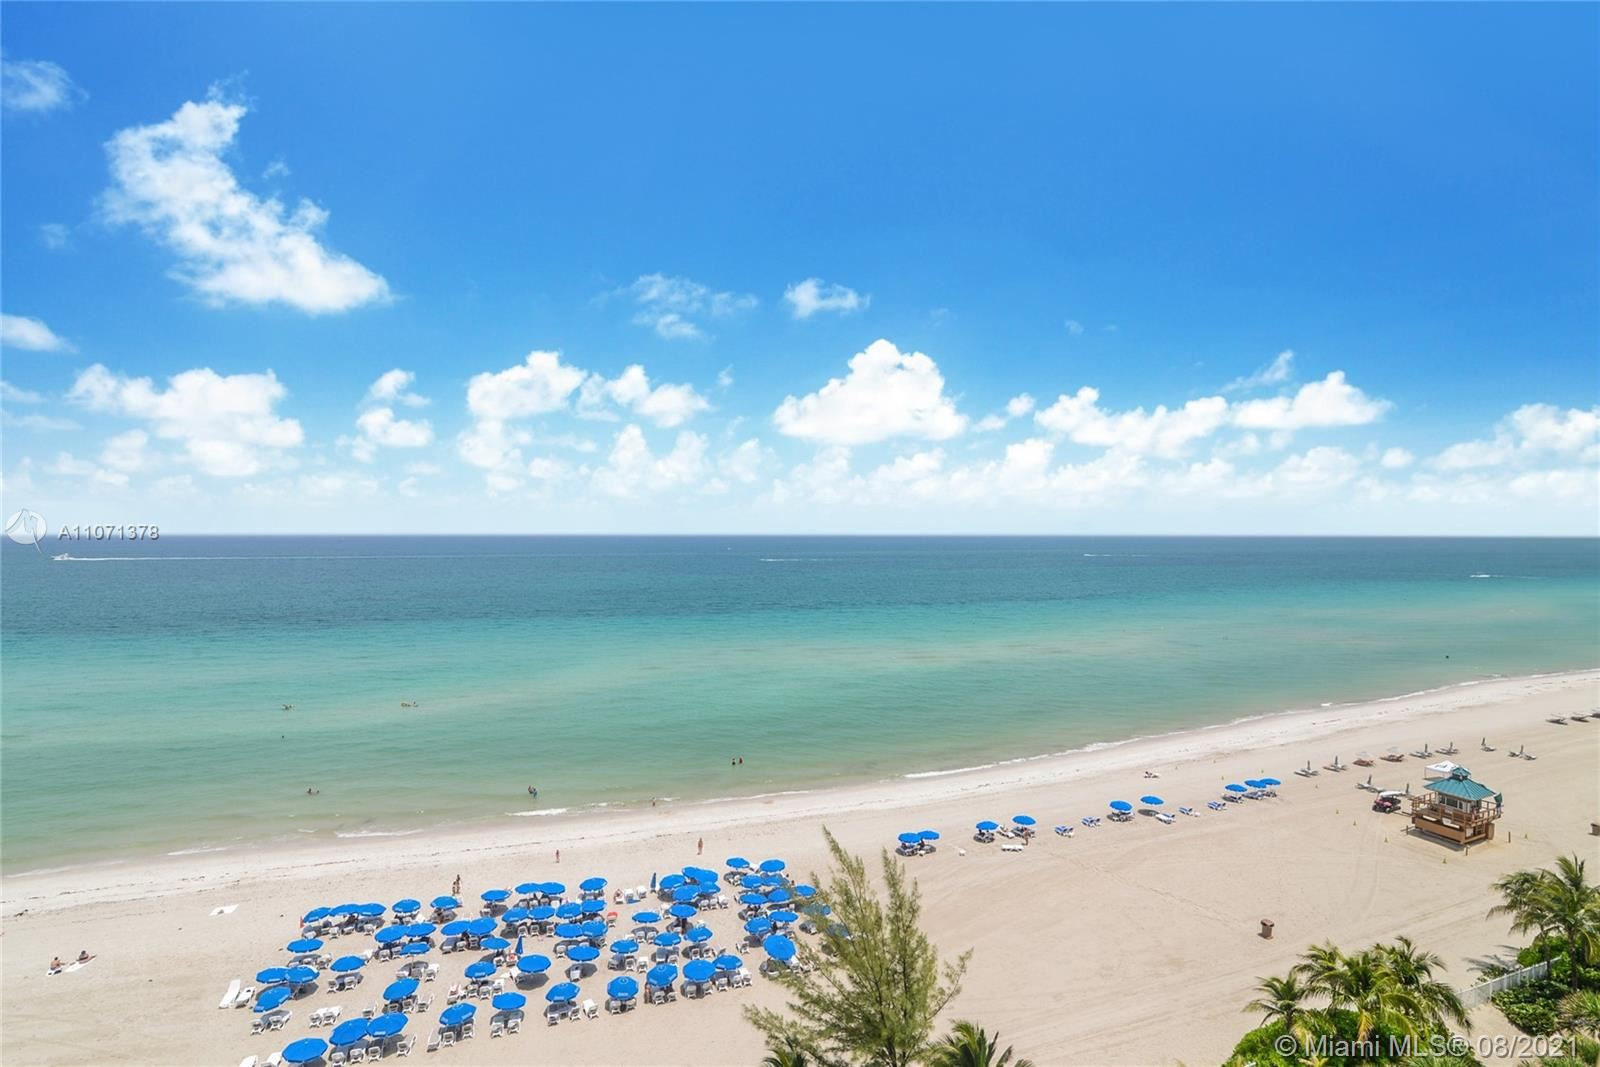 Photo of 18683 Collins Ave #1102, Sunny Isles Beach, FL 33160 (MLS # A11071378)